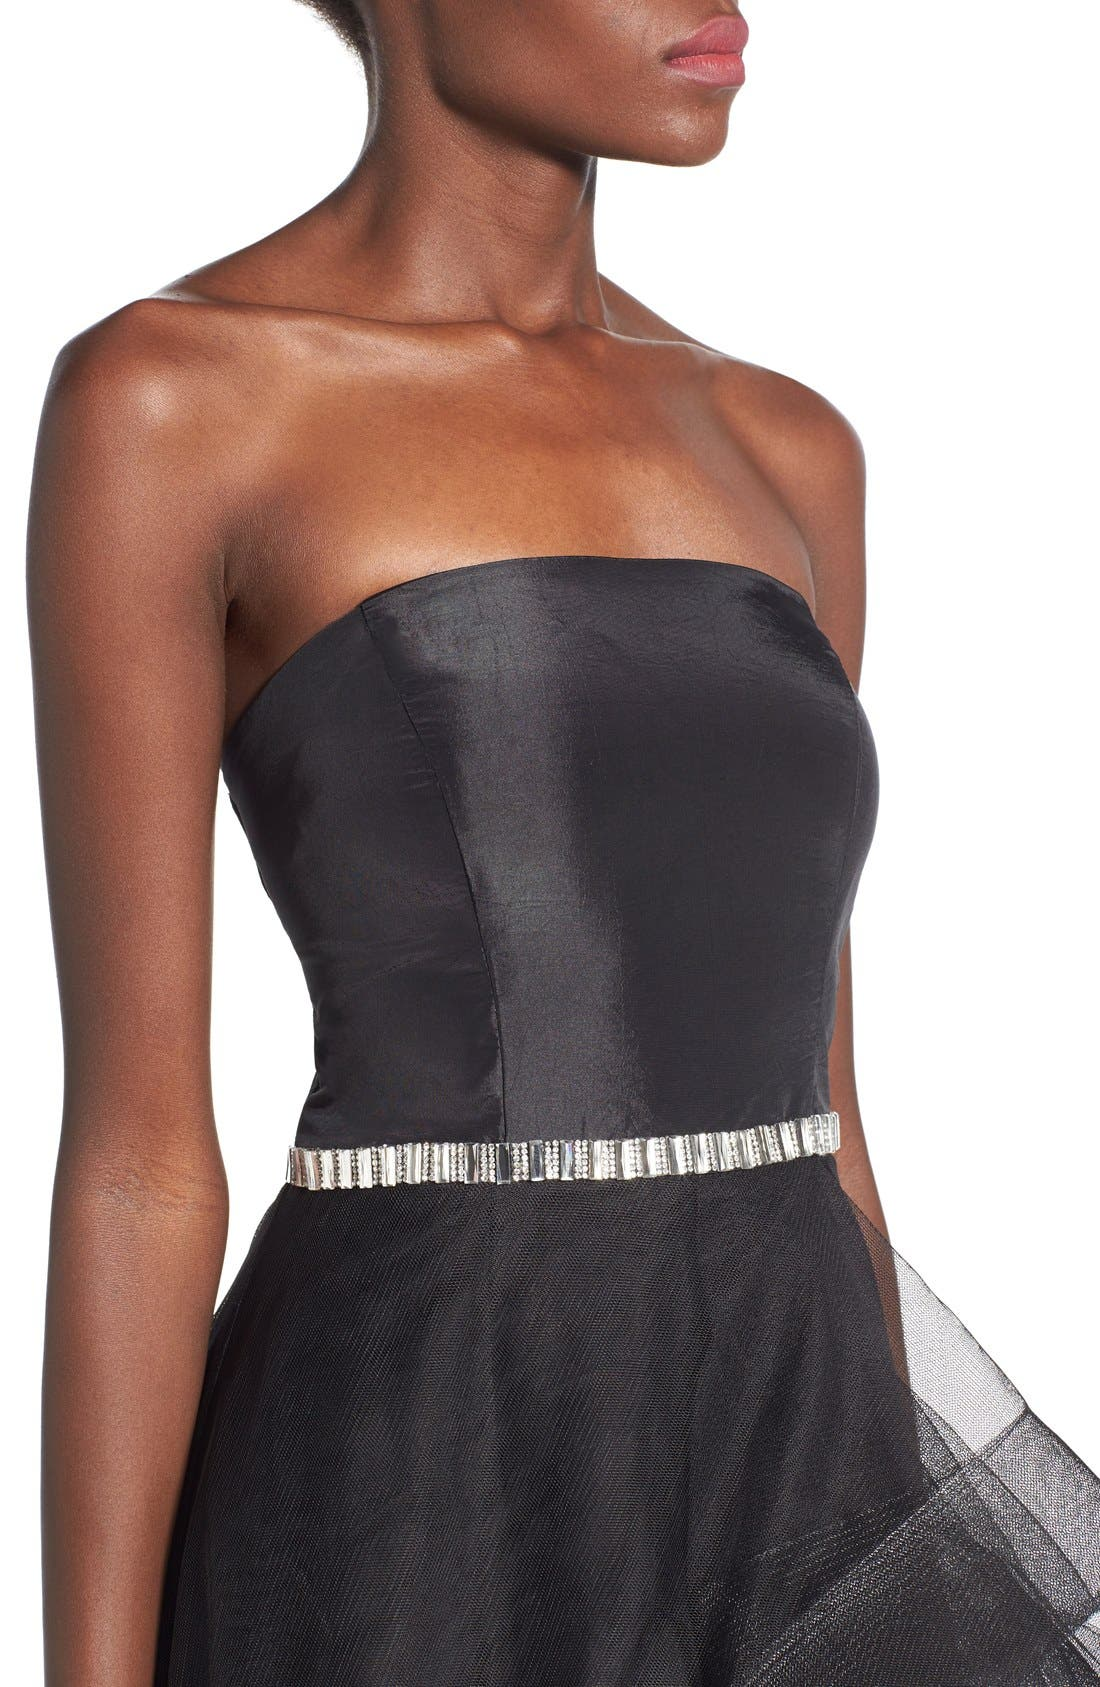 WAY-IN, 'Susie' Embellished Waist Tulle Strapless Dress, Alternate thumbnail 5, color, 001